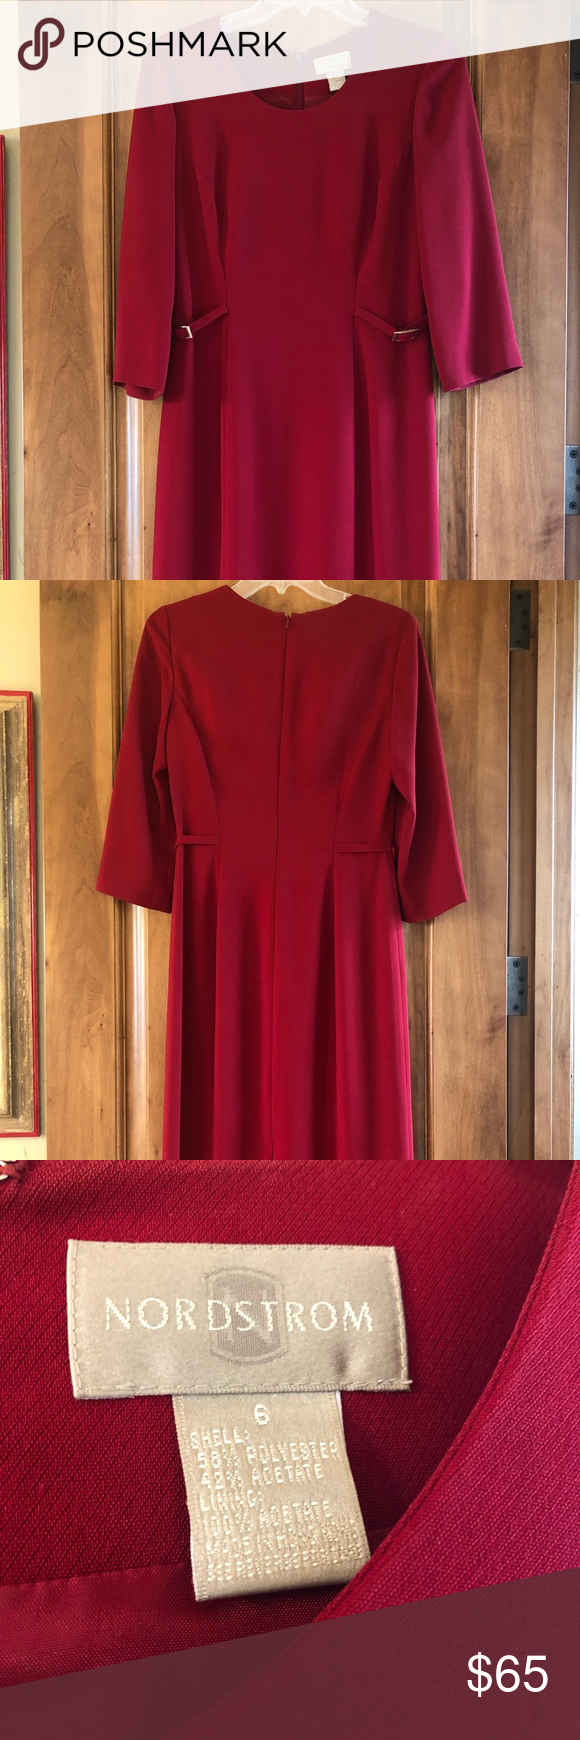 Take 50 Off Nordstrom Red Dress Long Sleeve Long Sleeve Dress Red Long Sleeve Dress Red Dress [ 1740 x 580 Pixel ]